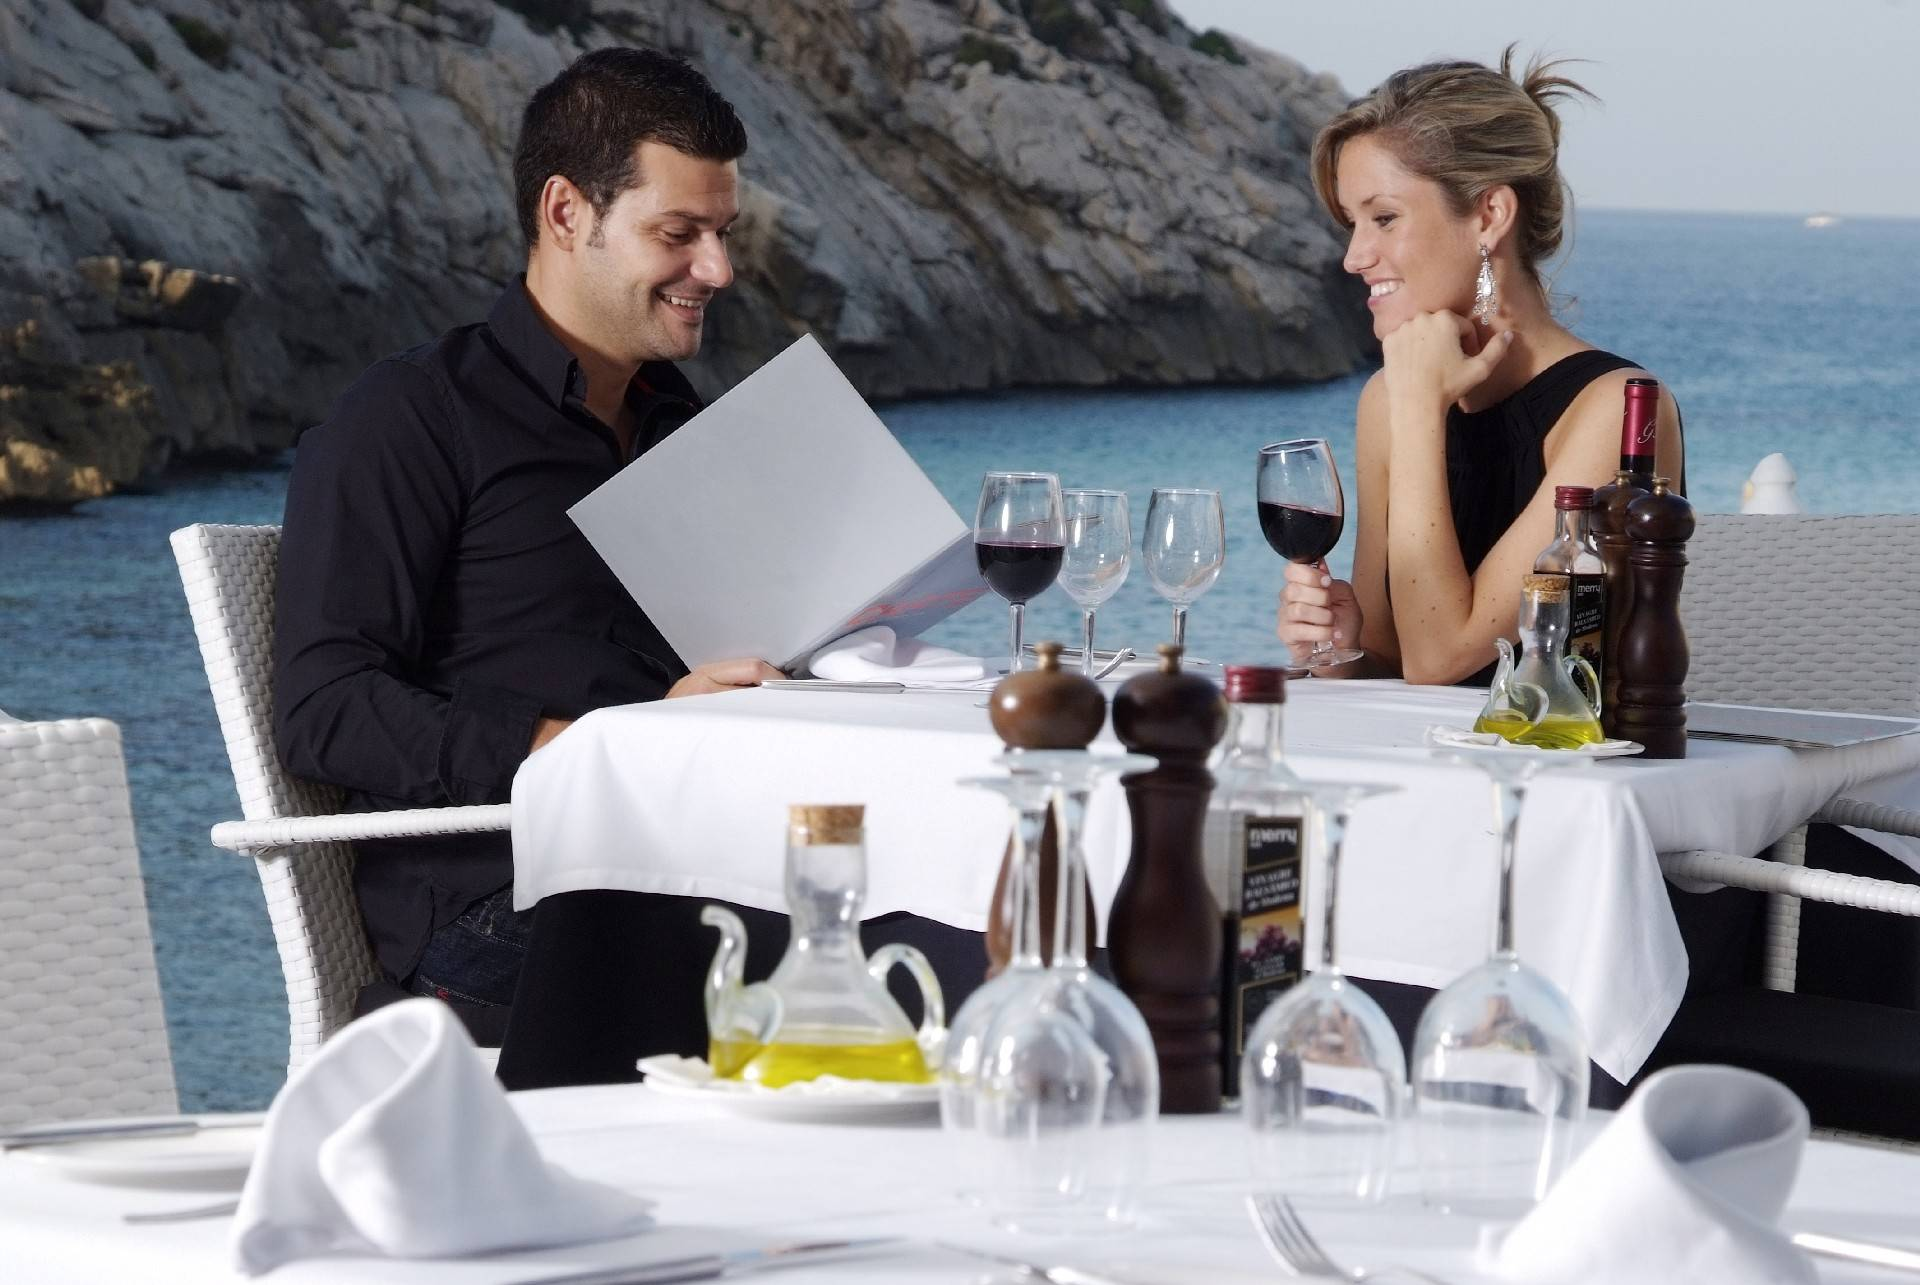 dinner-for-two-at-the-hotel-niu-restaurant-cala-san-vicente--by-hoposa